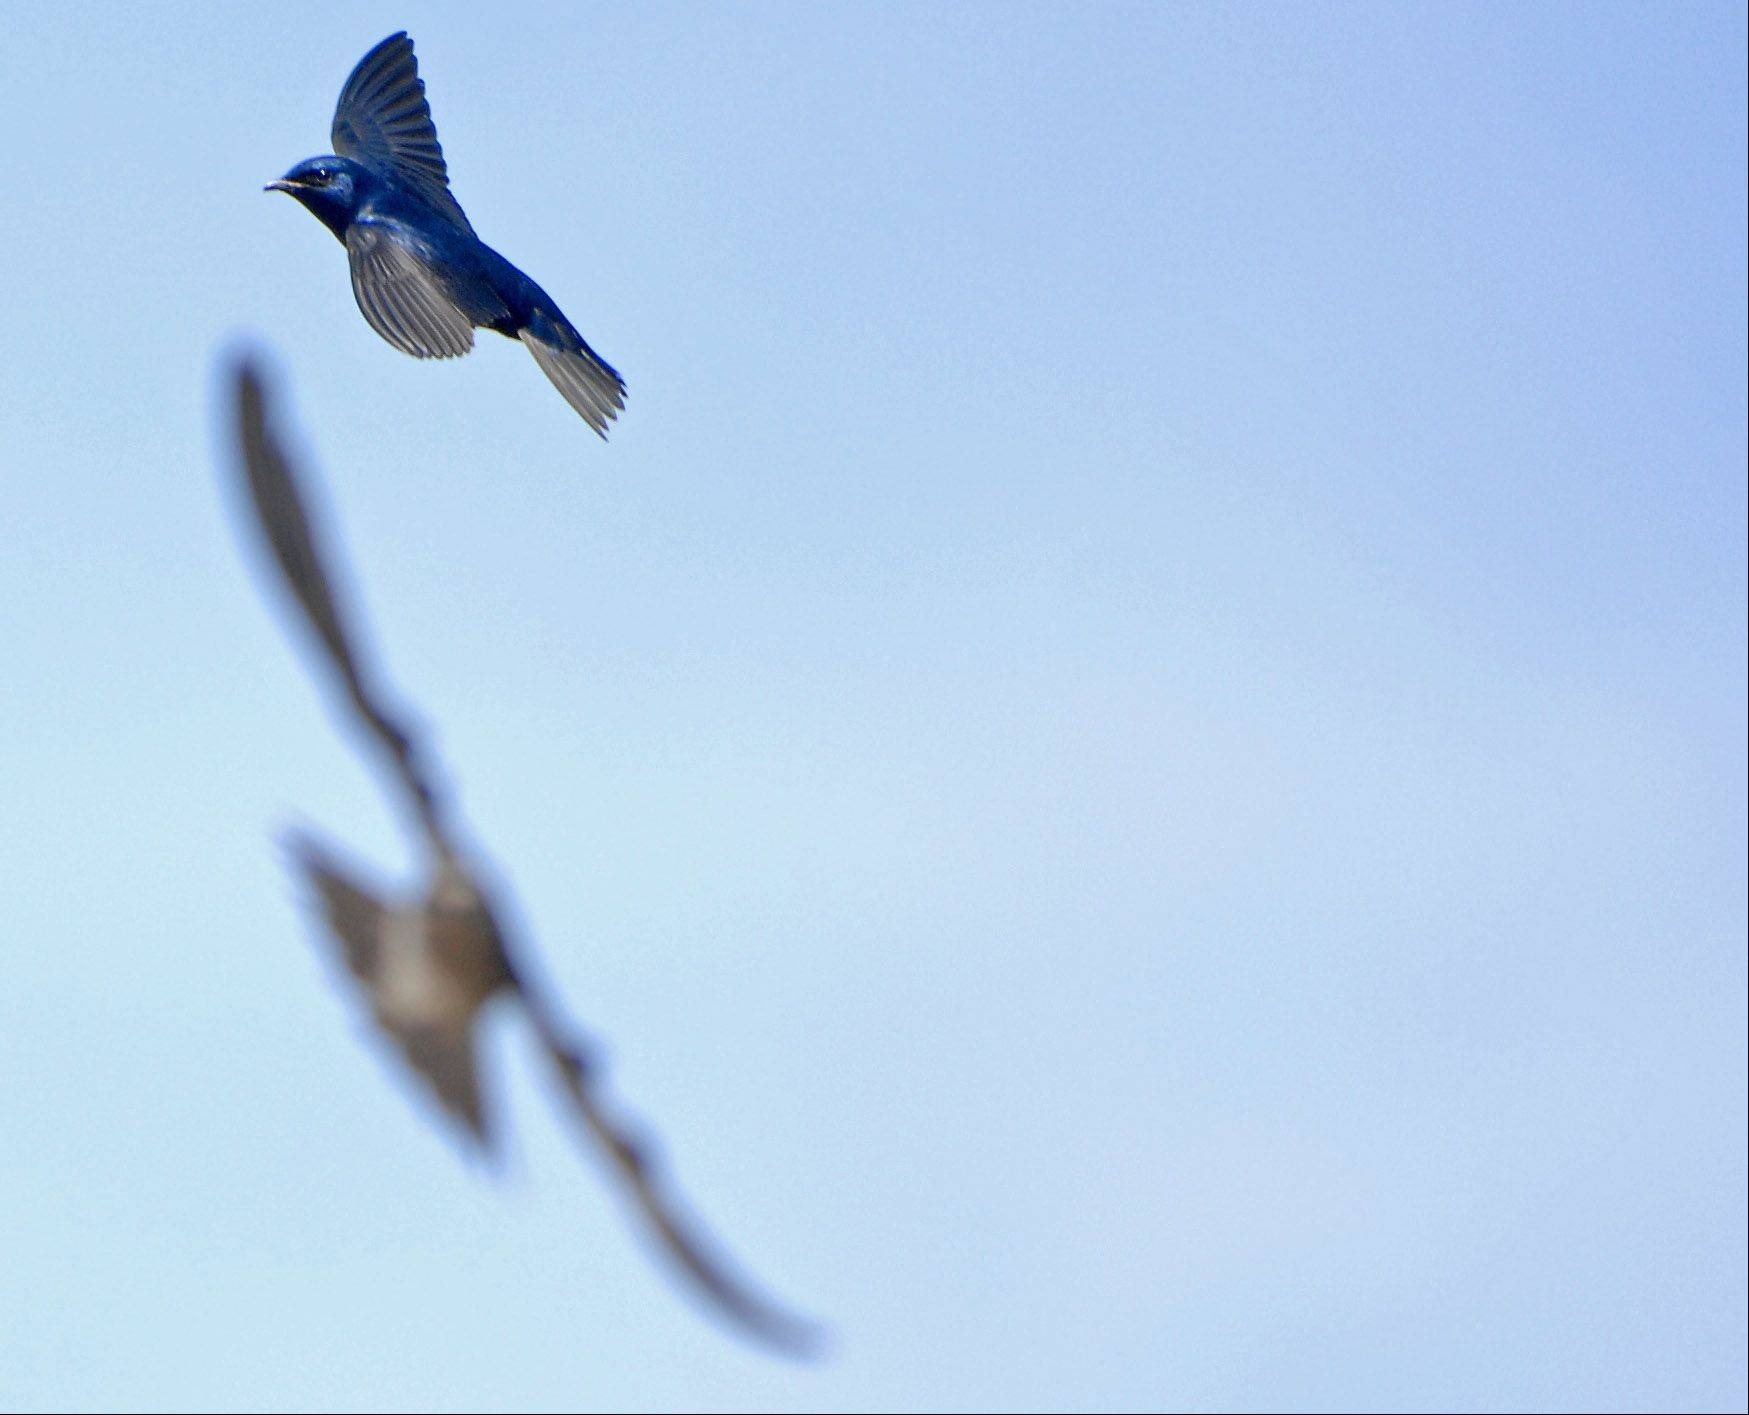 Fred Borchert of Batavia has helped foster a large colony of purple martins along the Riverwalk in Batavia.